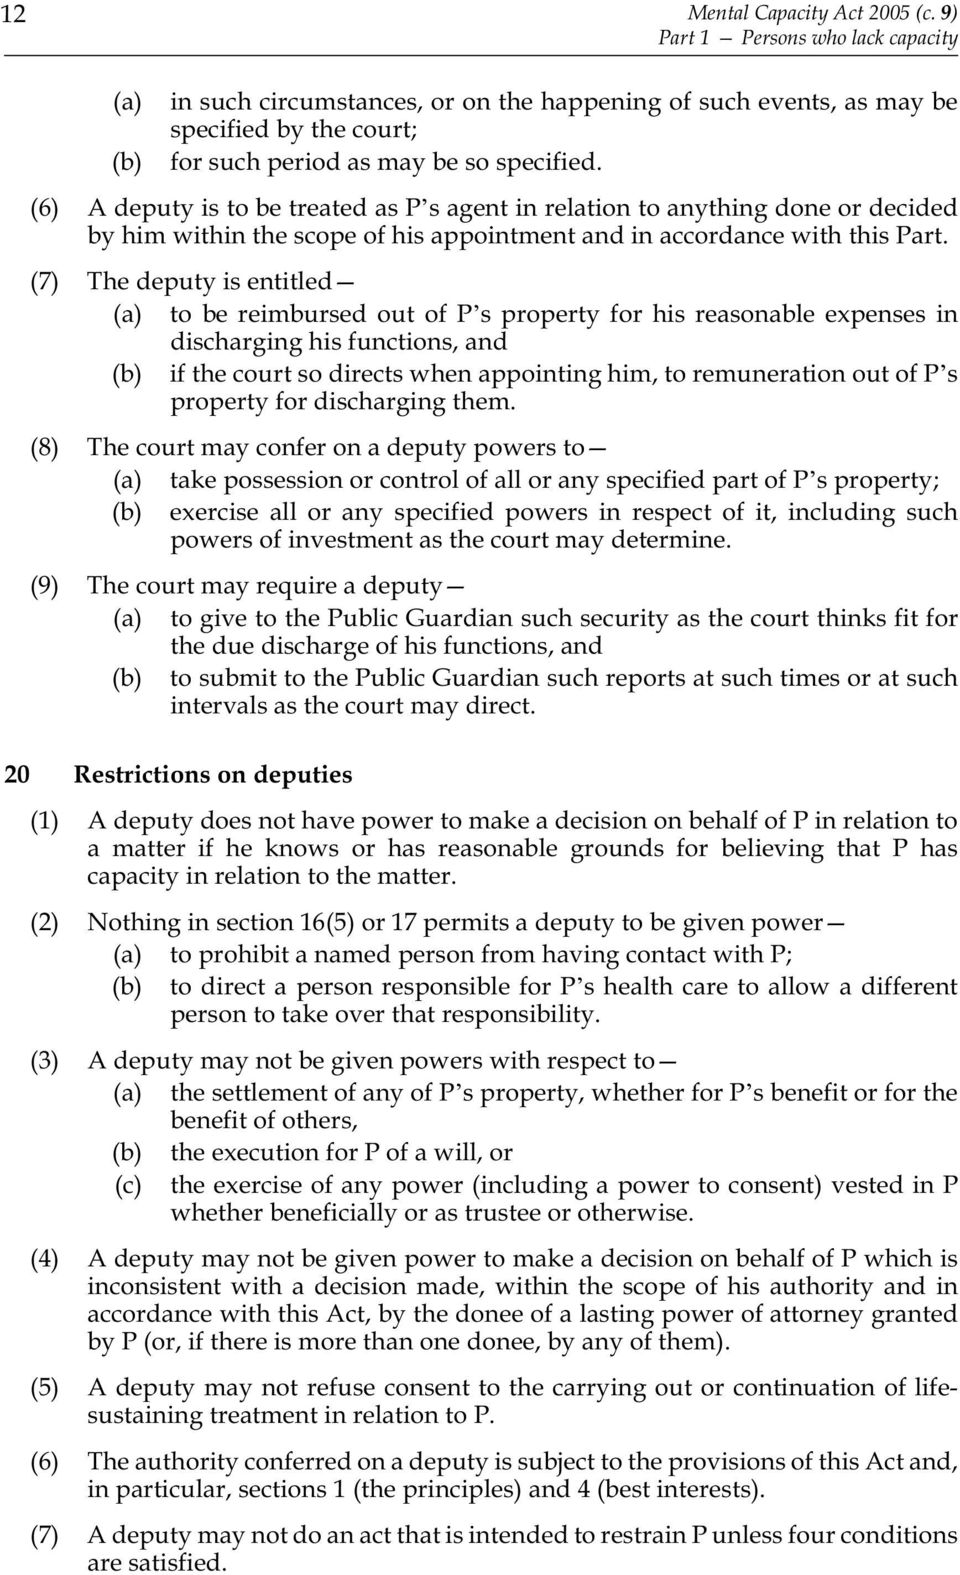 (6) A deputy is to be treated as P s agent in relation to anything done or decided by him within the scope of his appointment and in accordance with this Part.